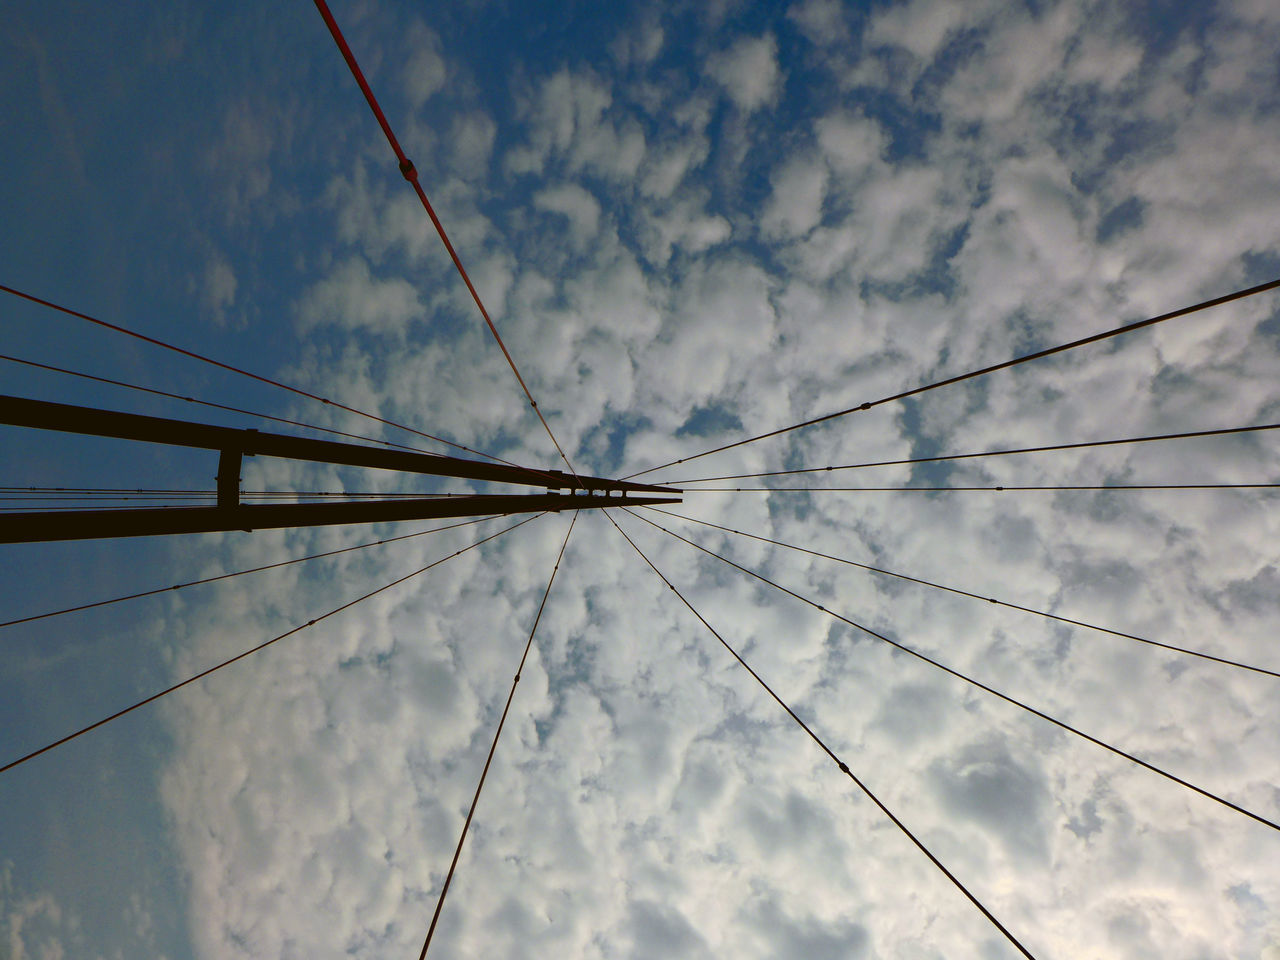 cable, sky, cloud - sky, low angle view, connection, no people, outdoors, day, nature